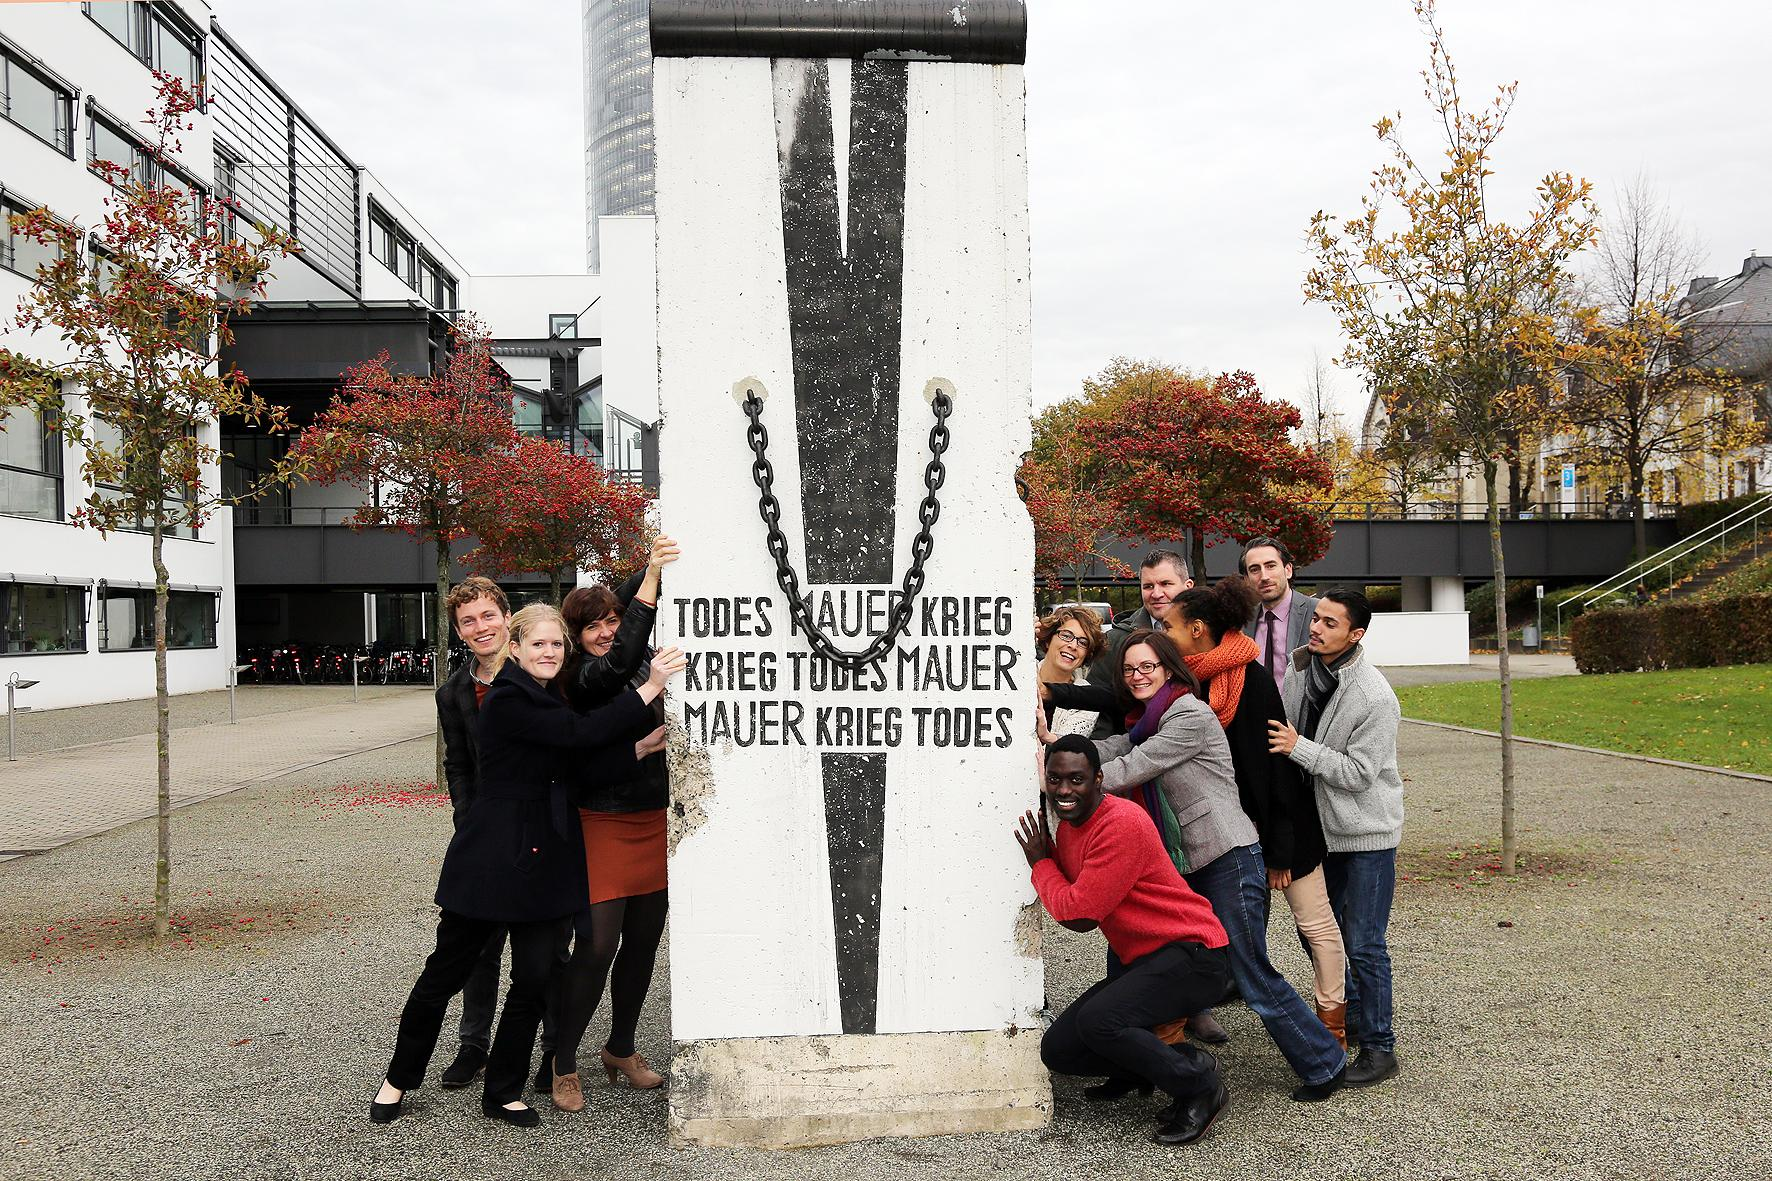 RT @dw_english: DW's social media team in front of a piece of the #BerlinWall. How are you commemorating its fall? #dw_mauerfall http://t.c…